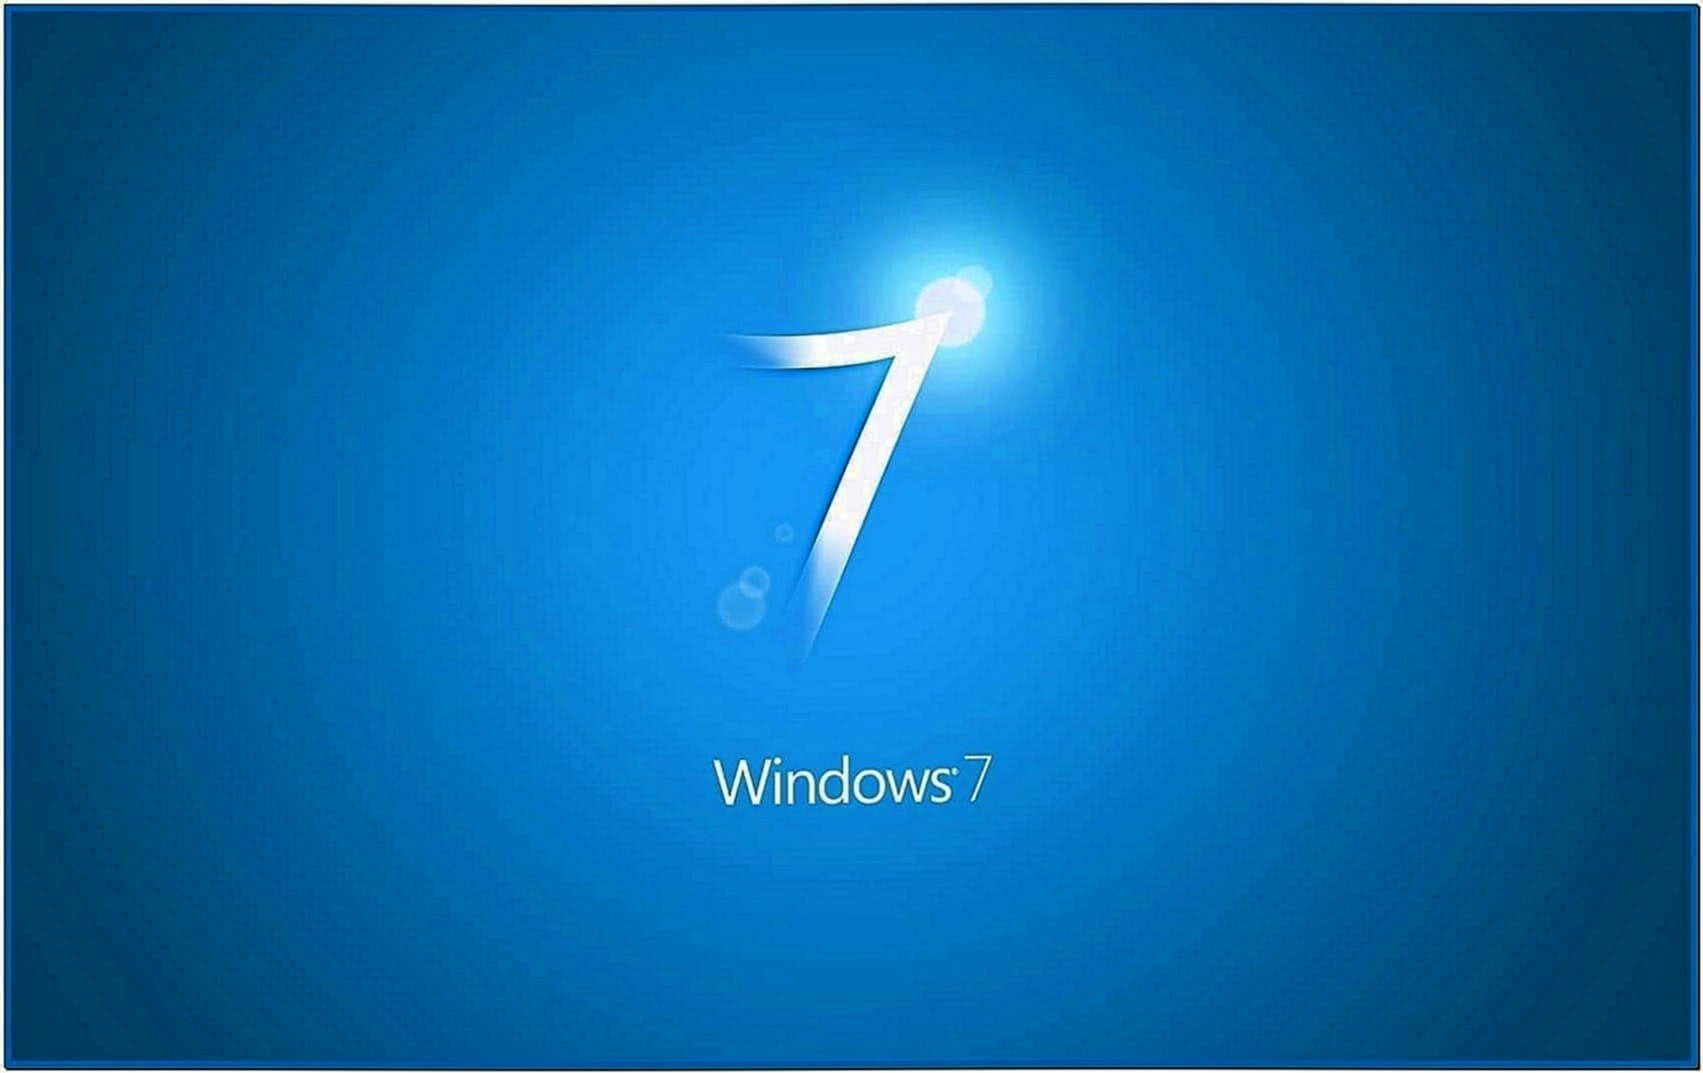 Desktop Screensavers Windows 7